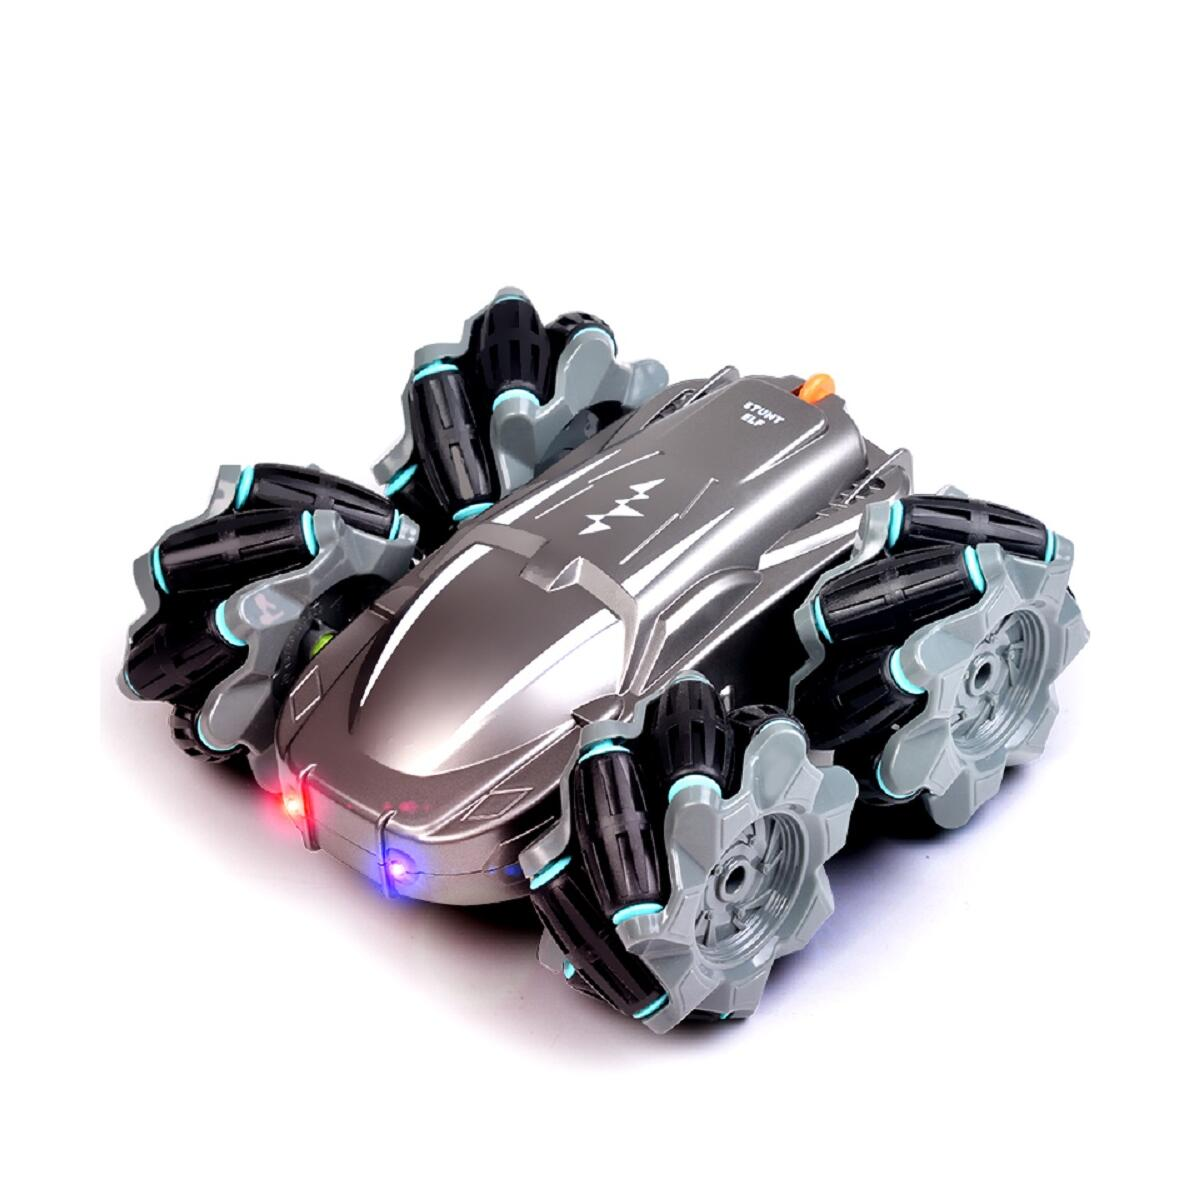 4WD Strunt Drift RC Car 2020 Remote Control Car for Kids and Adults New Designed Could Run Sideways Rotate Drift in All Direction